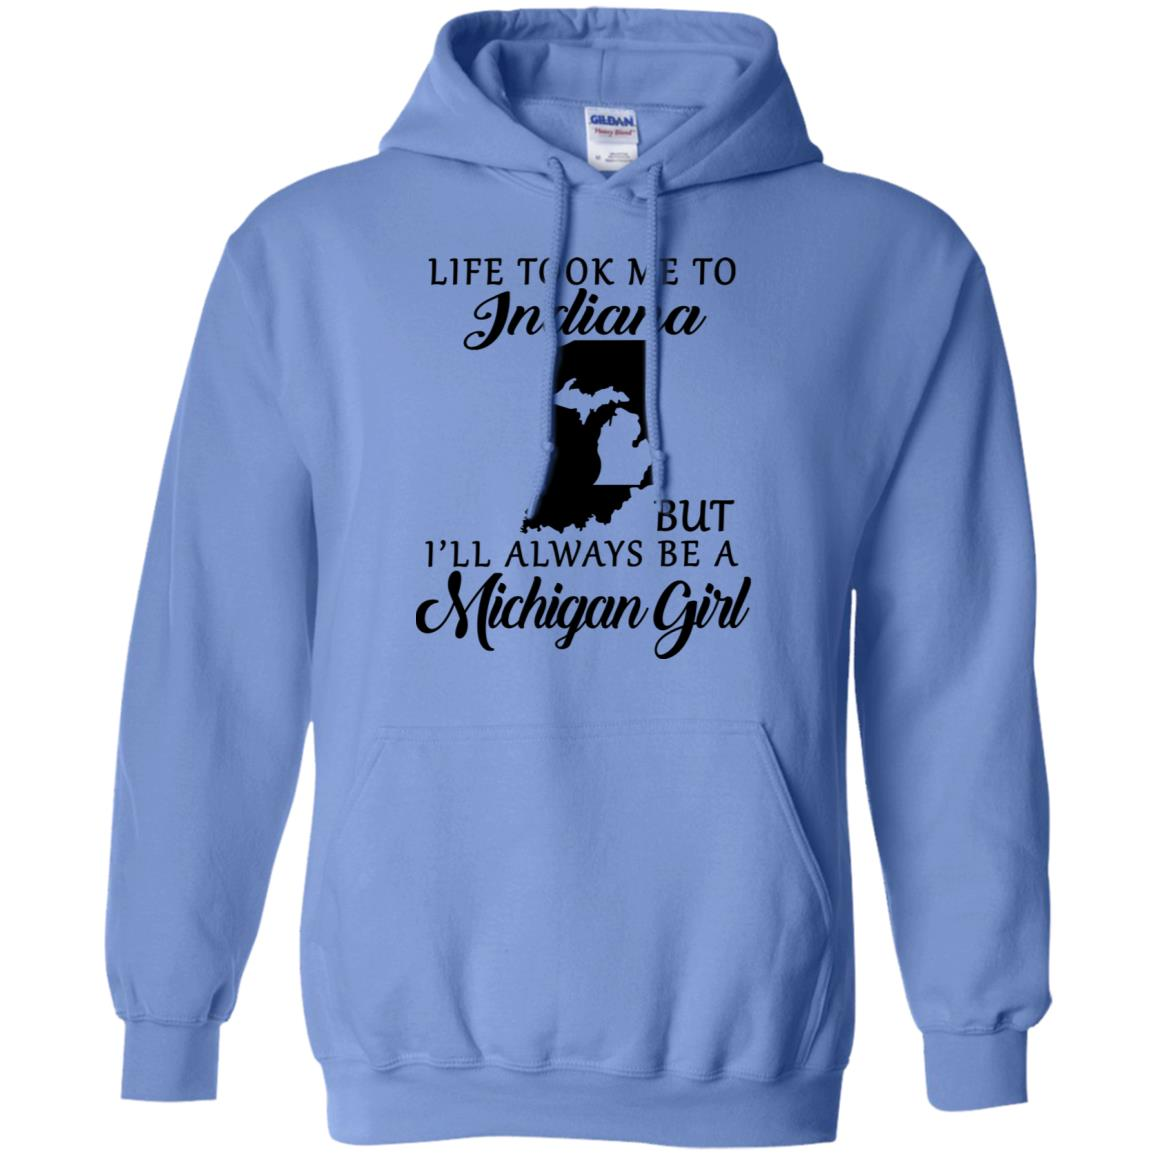 Life Took Me To Indiana But I'll Always Be A Michigan Girl T-shirt